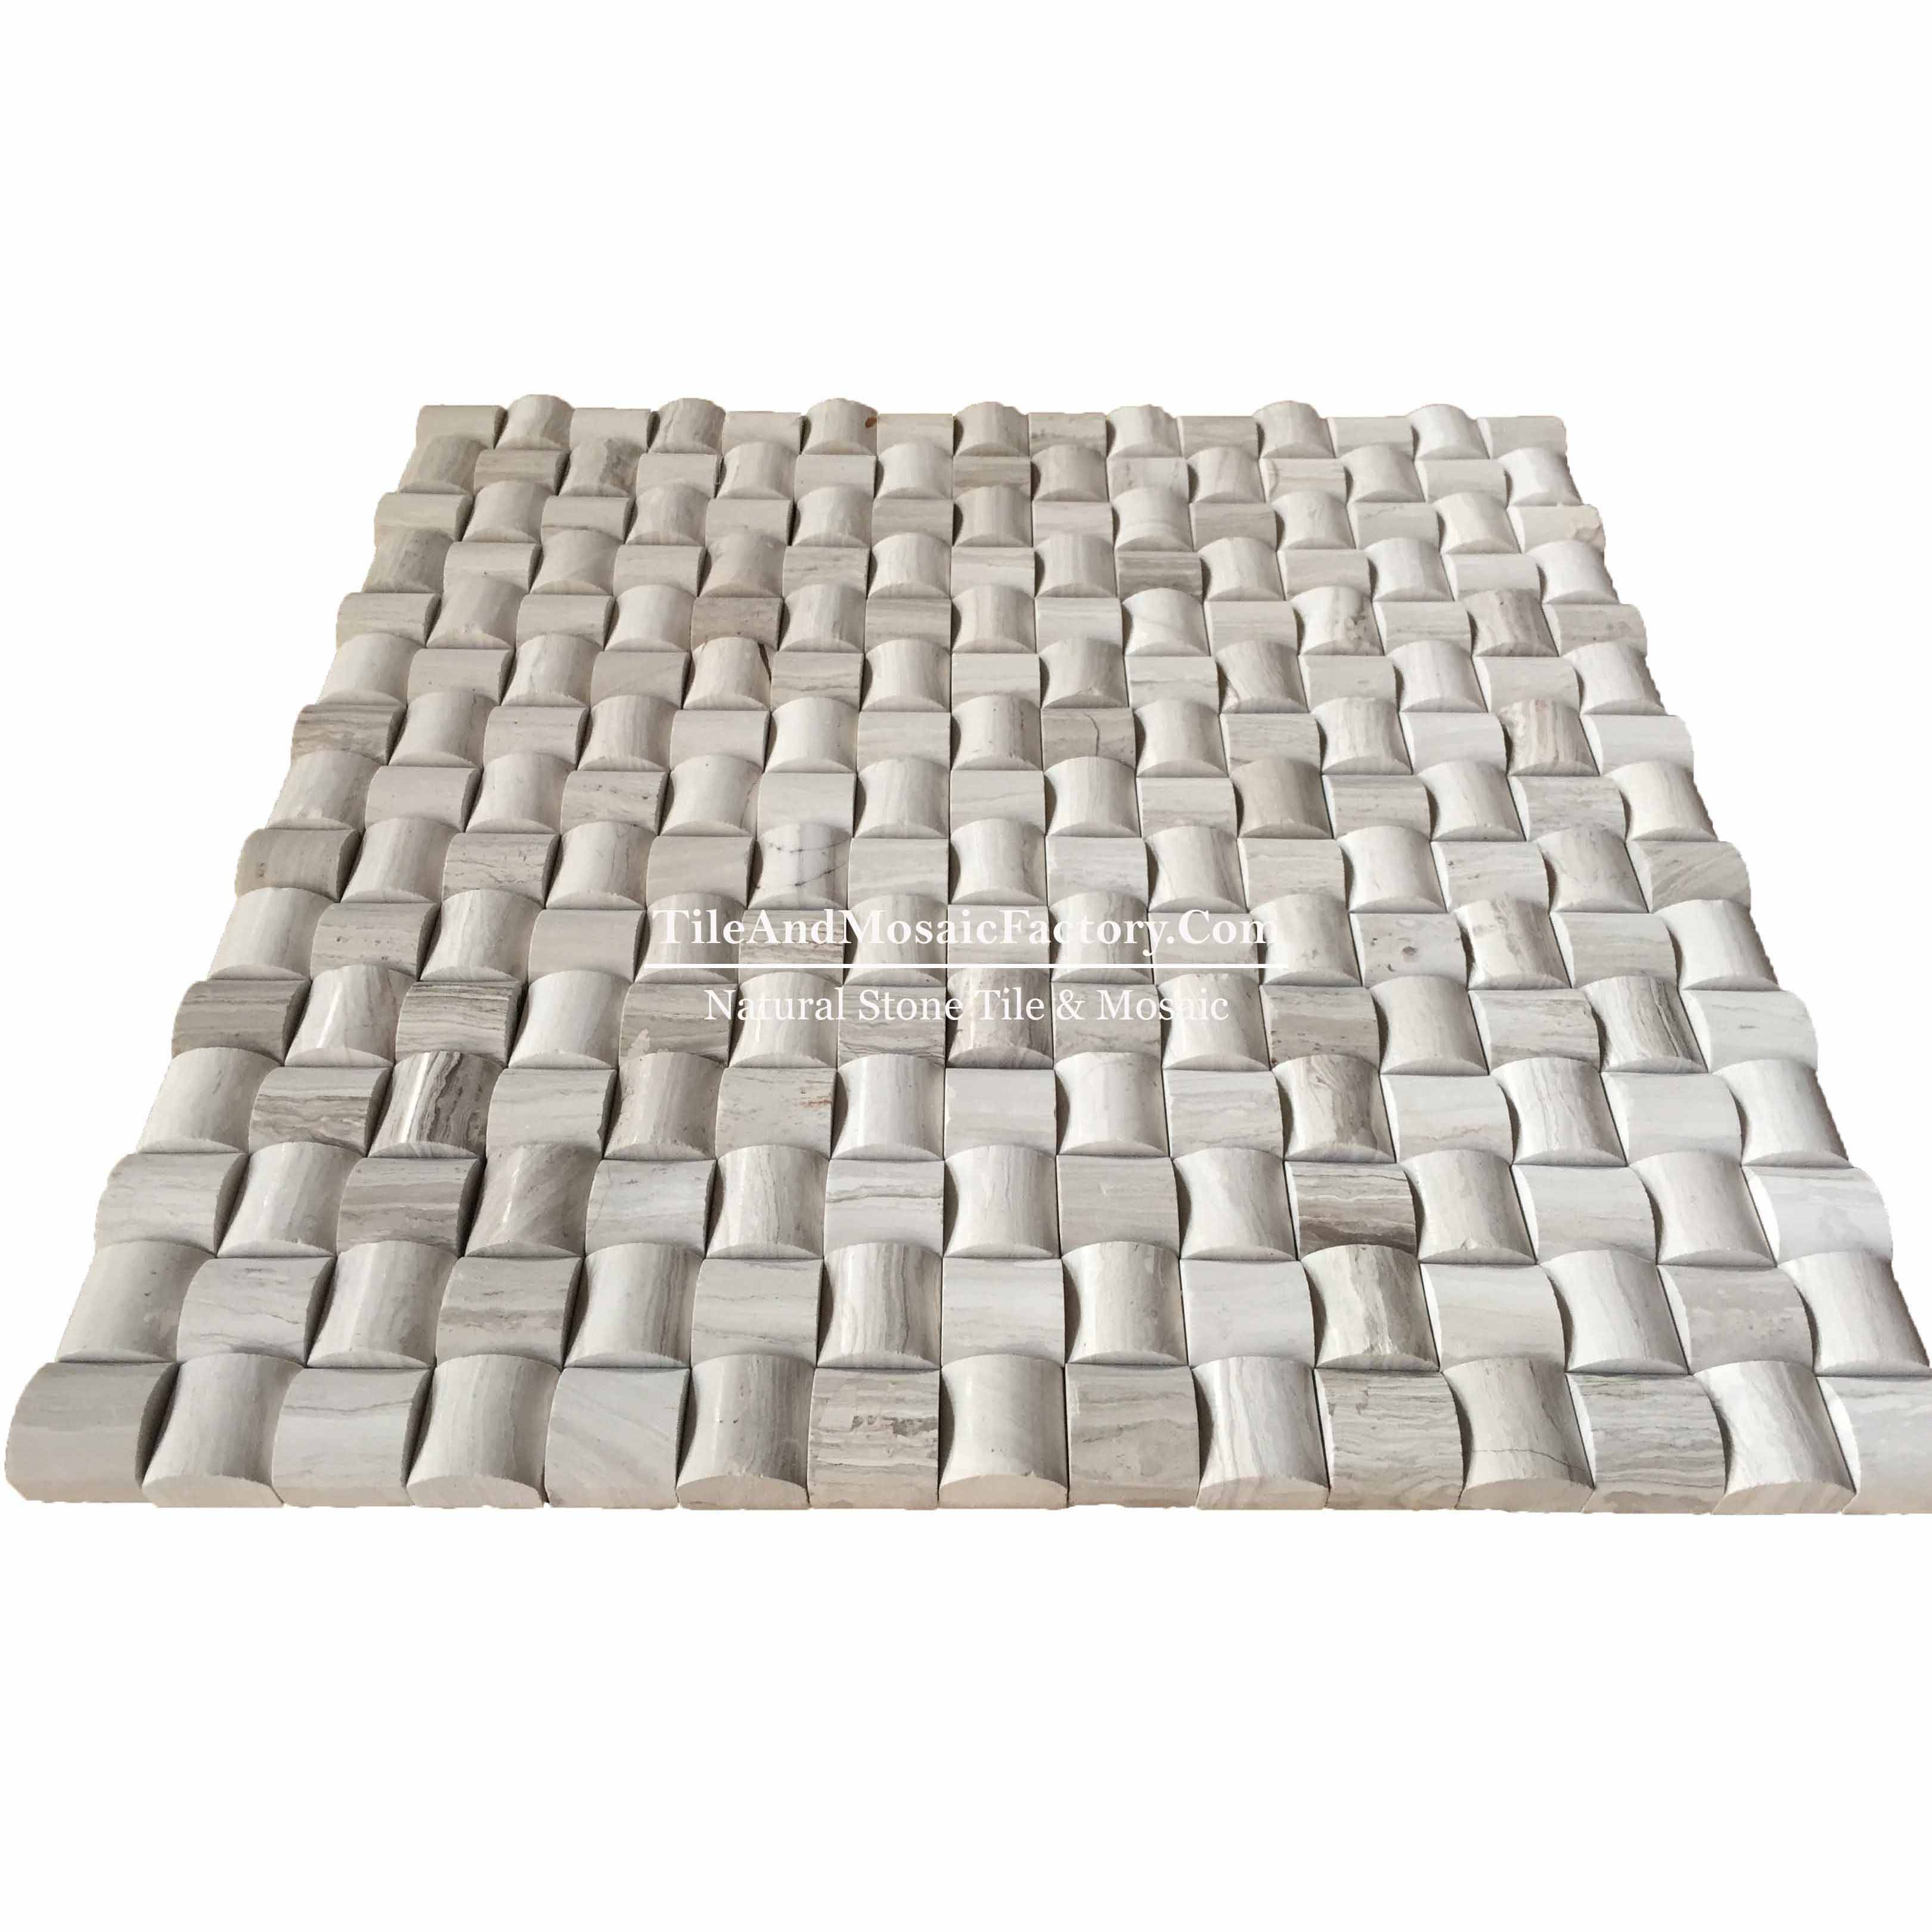 "Wooden Gray Square Pillowed 3/4x3/4"" polished Grey color Marble Mosaic"